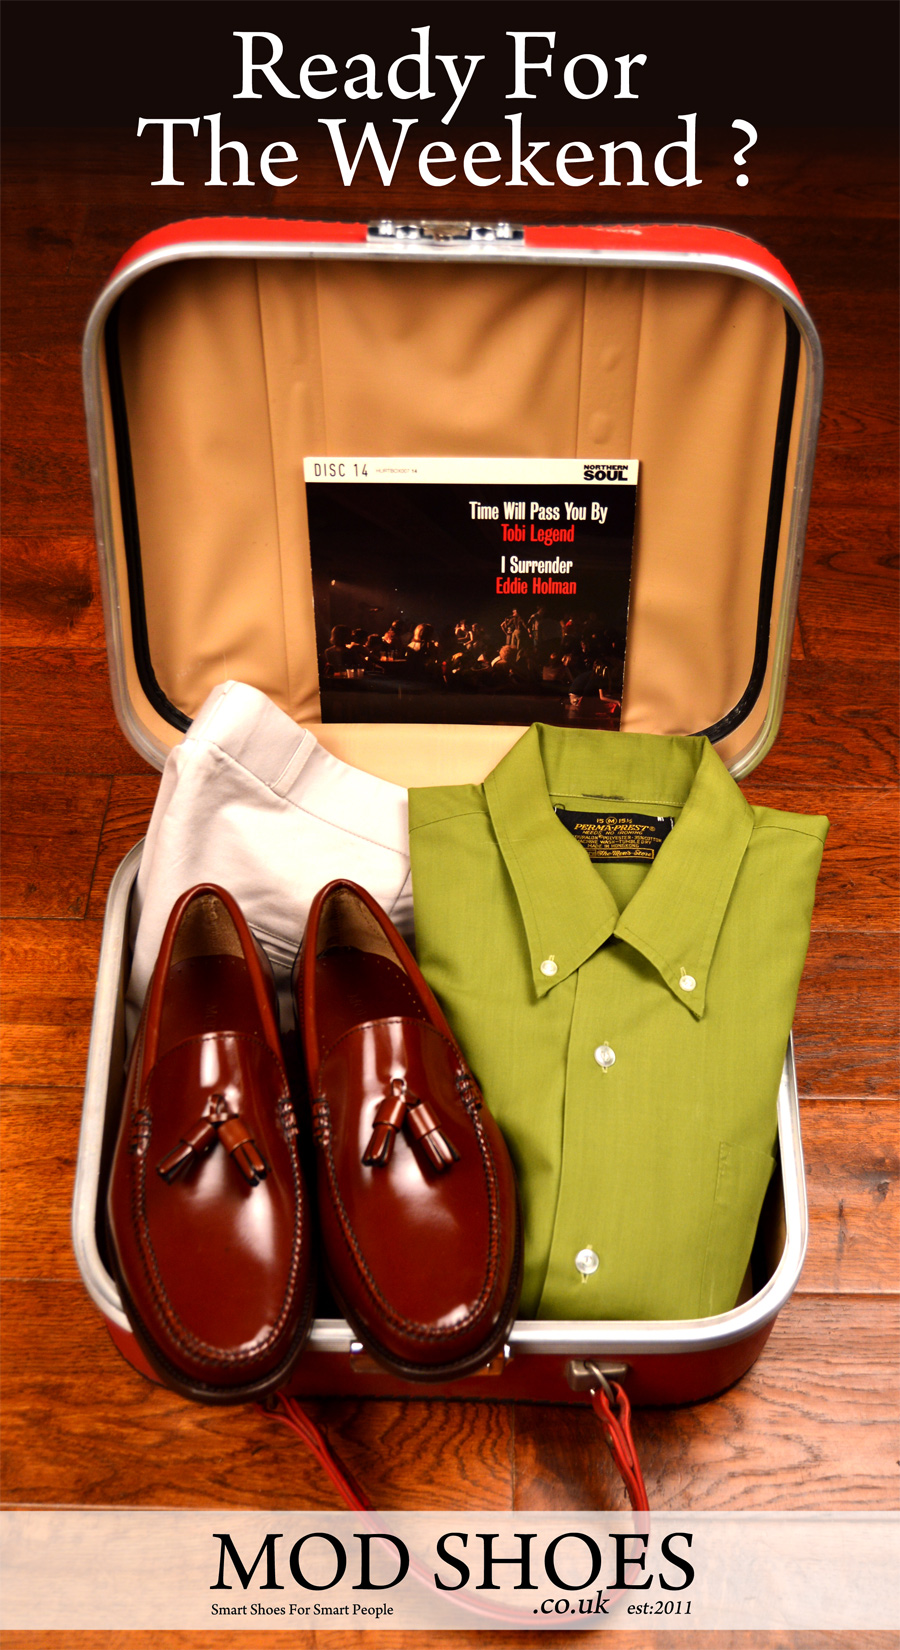 modshoes-chestnut-lord-ready-for-the-weekend